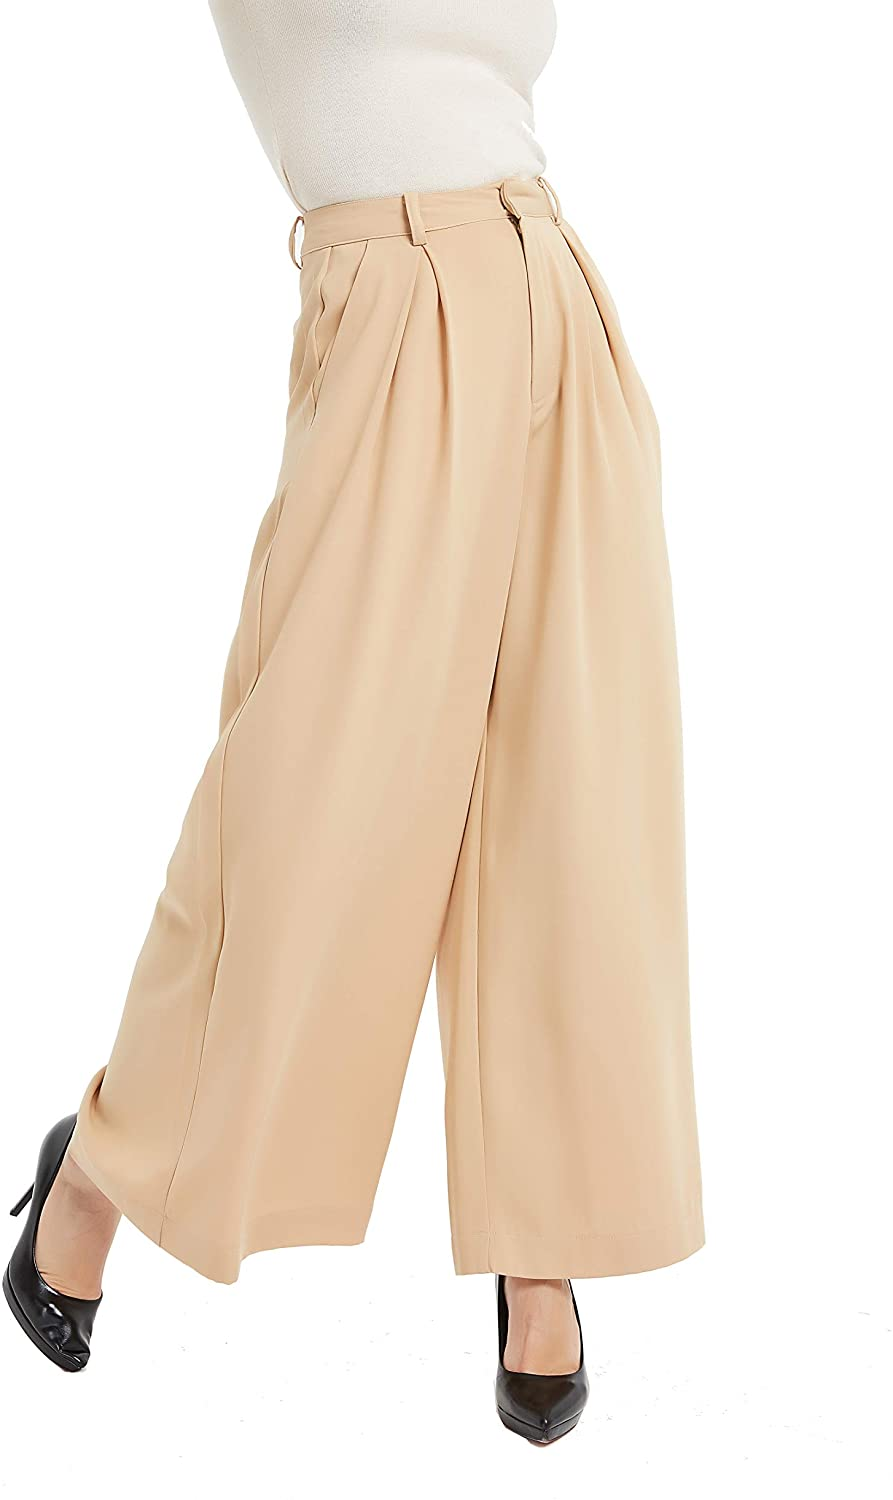 1920s Fashion & Clothing | Roaring 20s Attire Tronjori Women High Waist Casual Wide Leg Long Palazzo Pants Trousers $35.99 AT vintagedancer.com